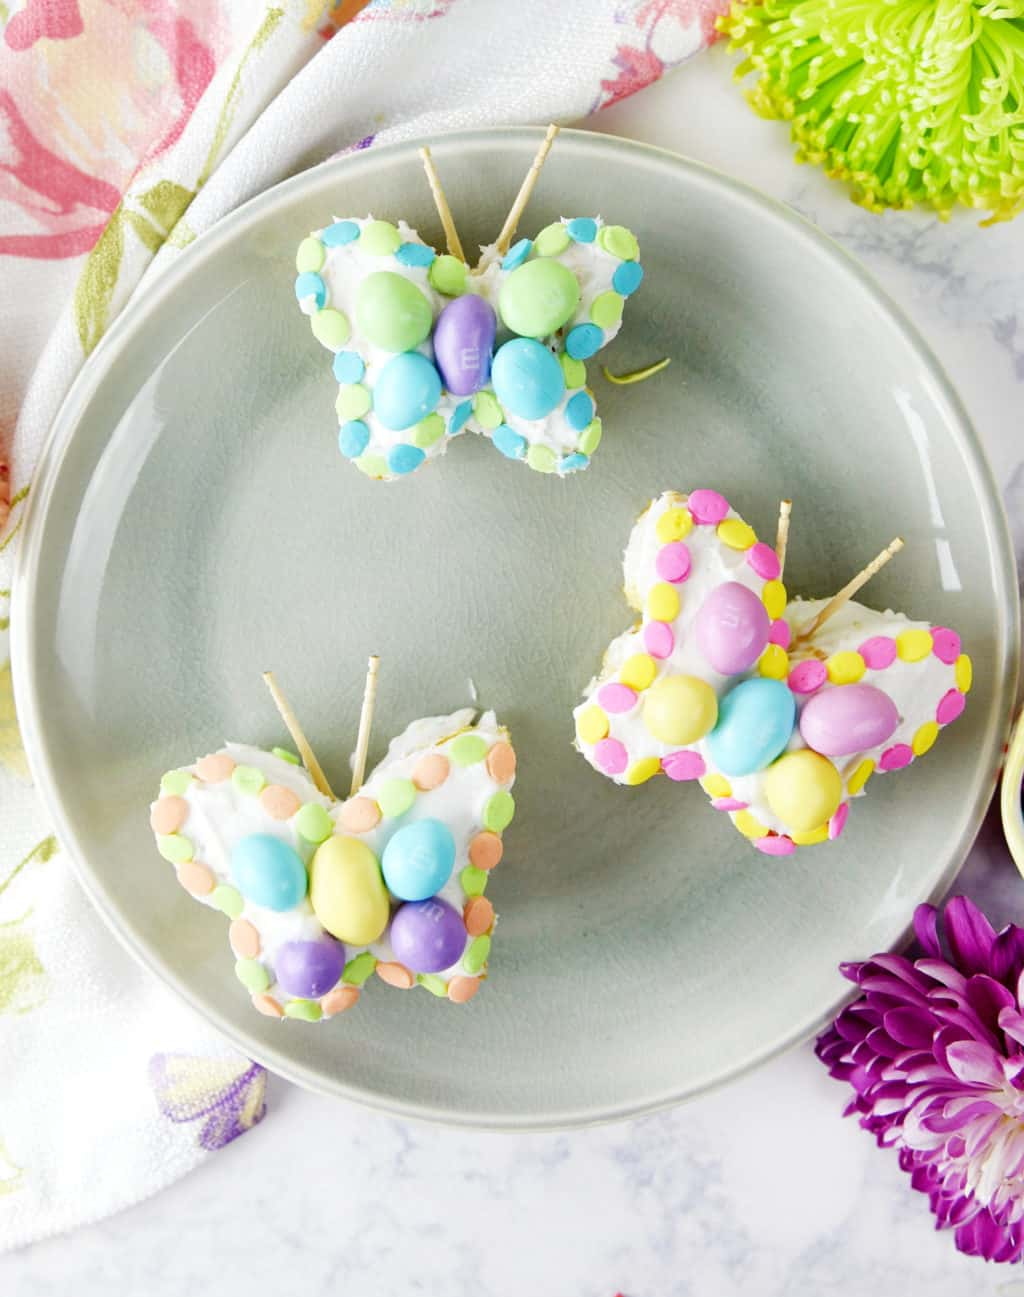 Butterfly Mini Cakes made from Cupcakes!! So pretty and cute for spring and Easter!!